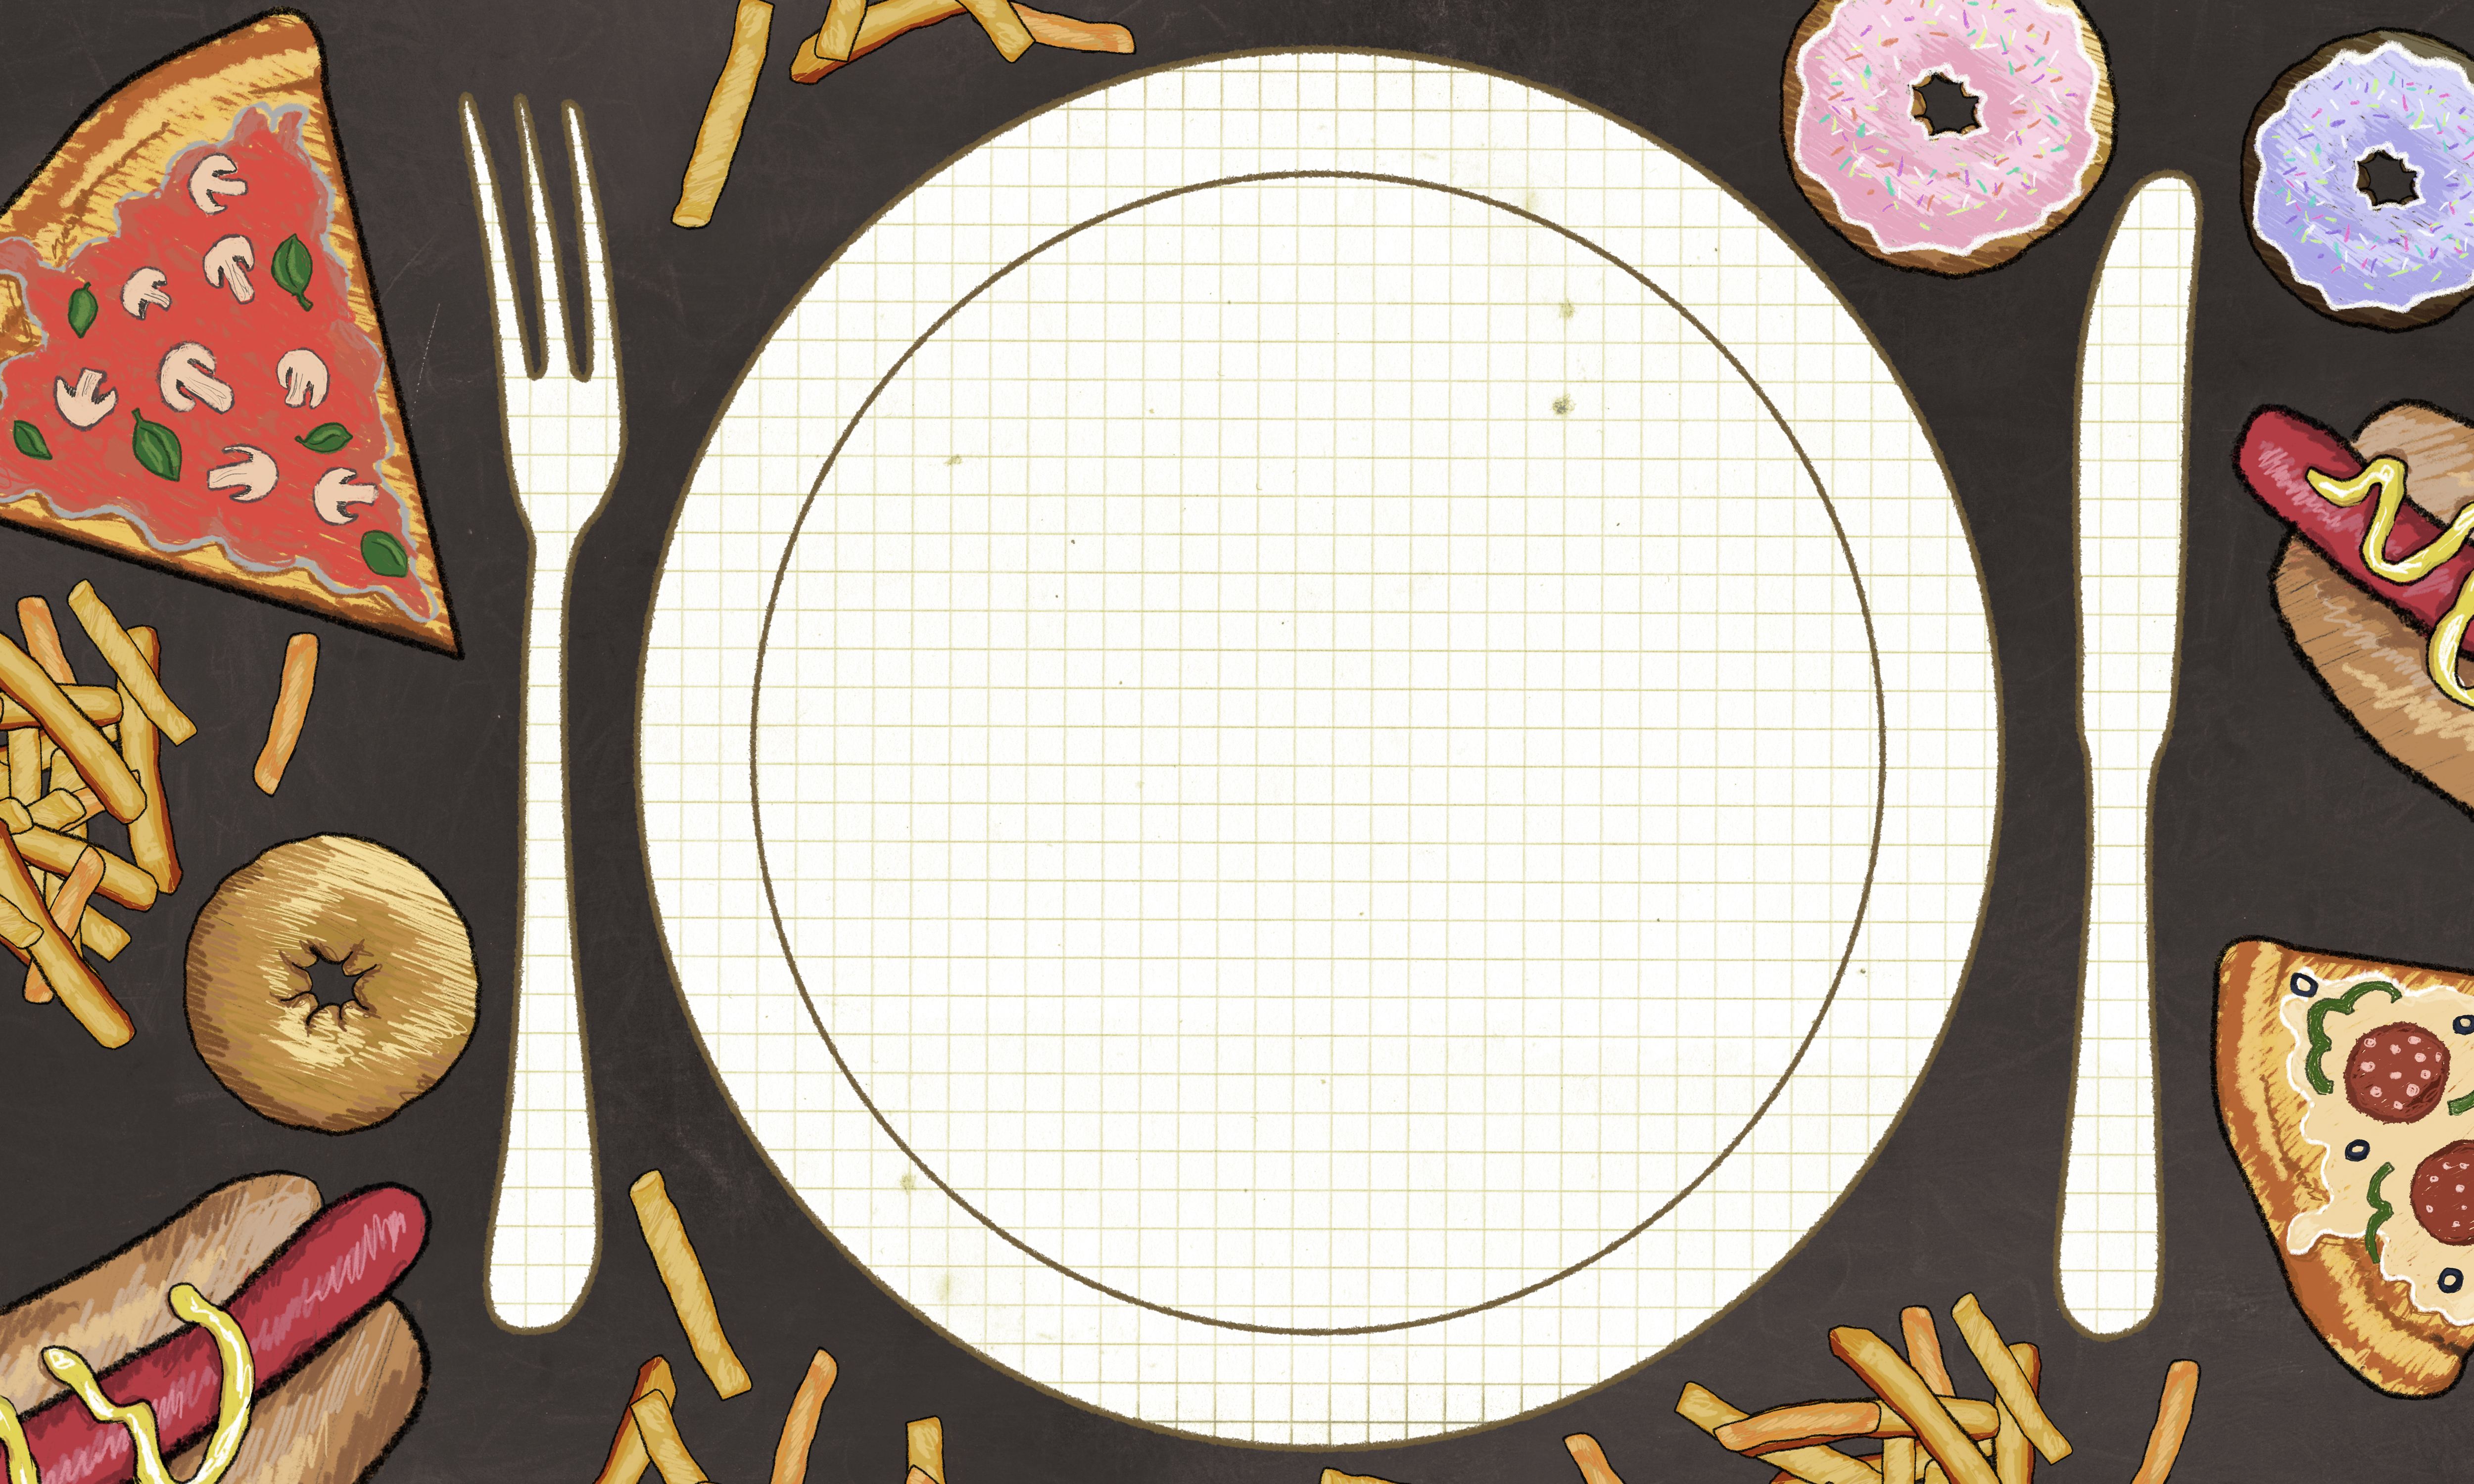 Anorexia illustrated with an empty Plate. No appetite, but lots of Foods. Blank space for writing in Center